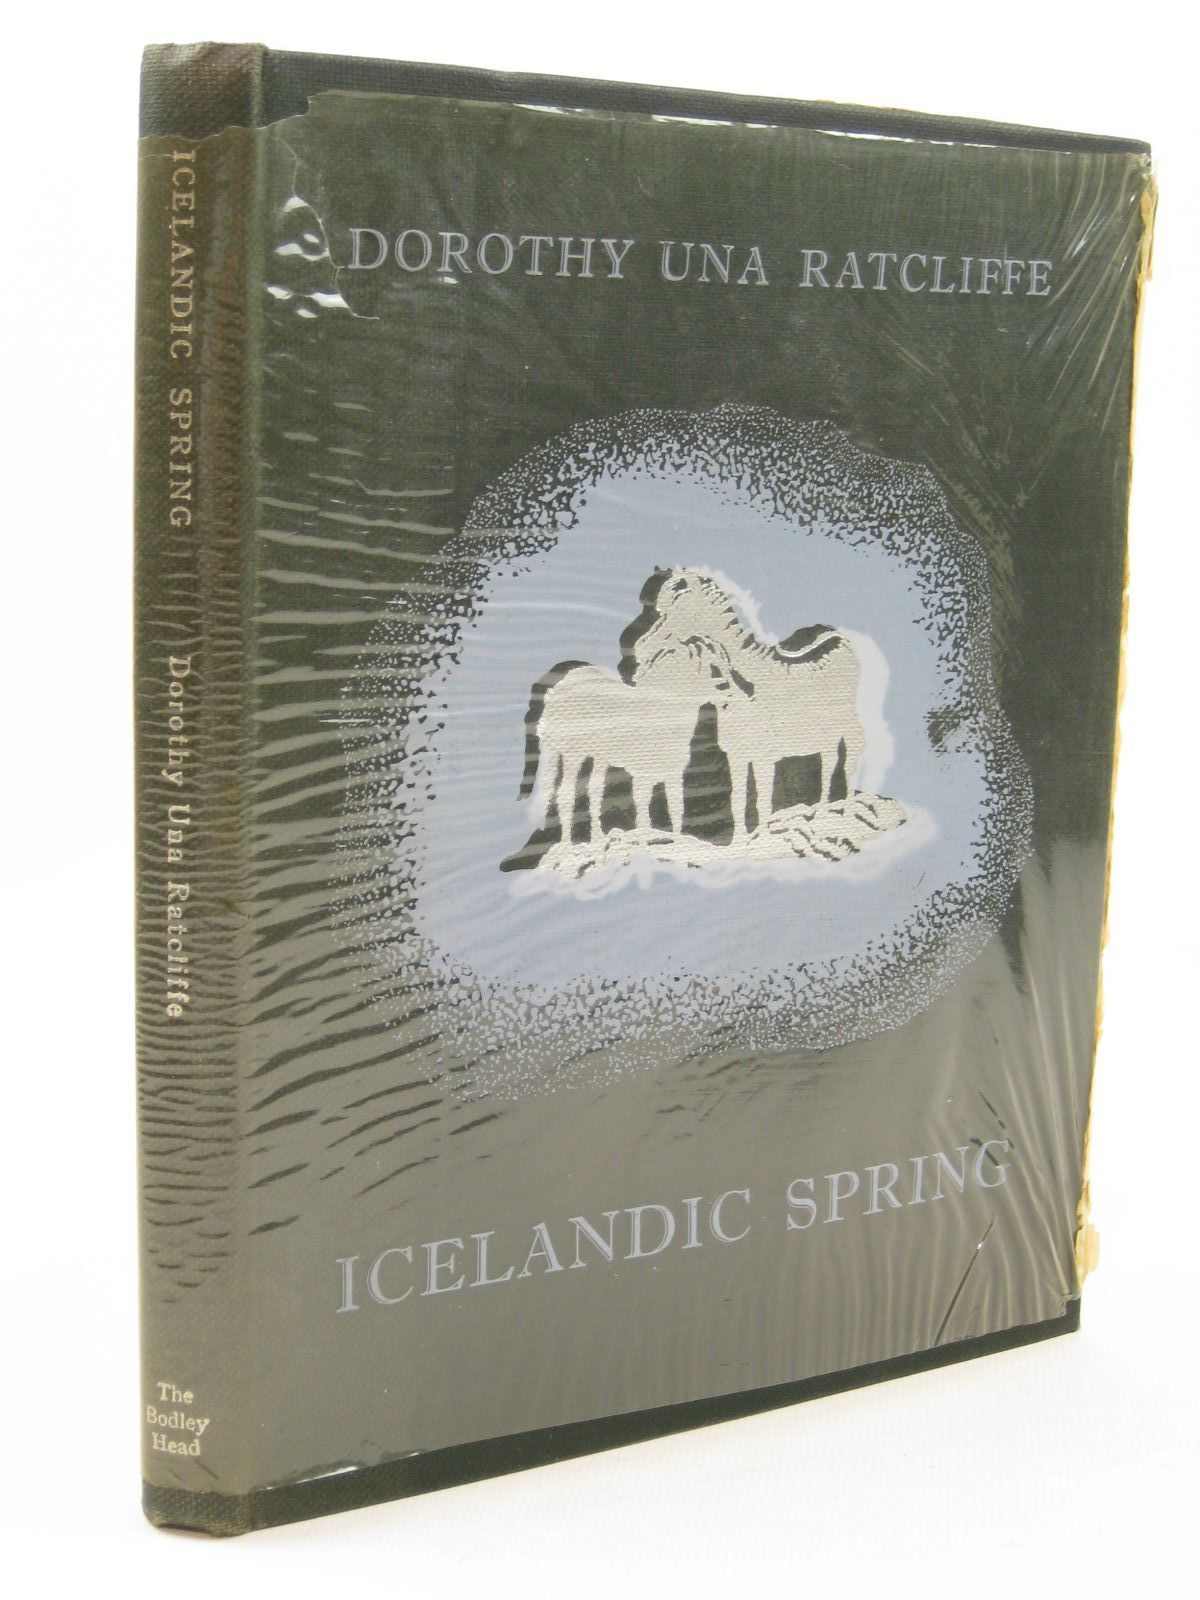 Photo of ICELANDIC SPRING written by Ratcliffe, Dorothy Una illustrated by Arnason, Barbara published by The Bodley Head (STOCK CODE: 1402429)  for sale by Stella & Rose's Books